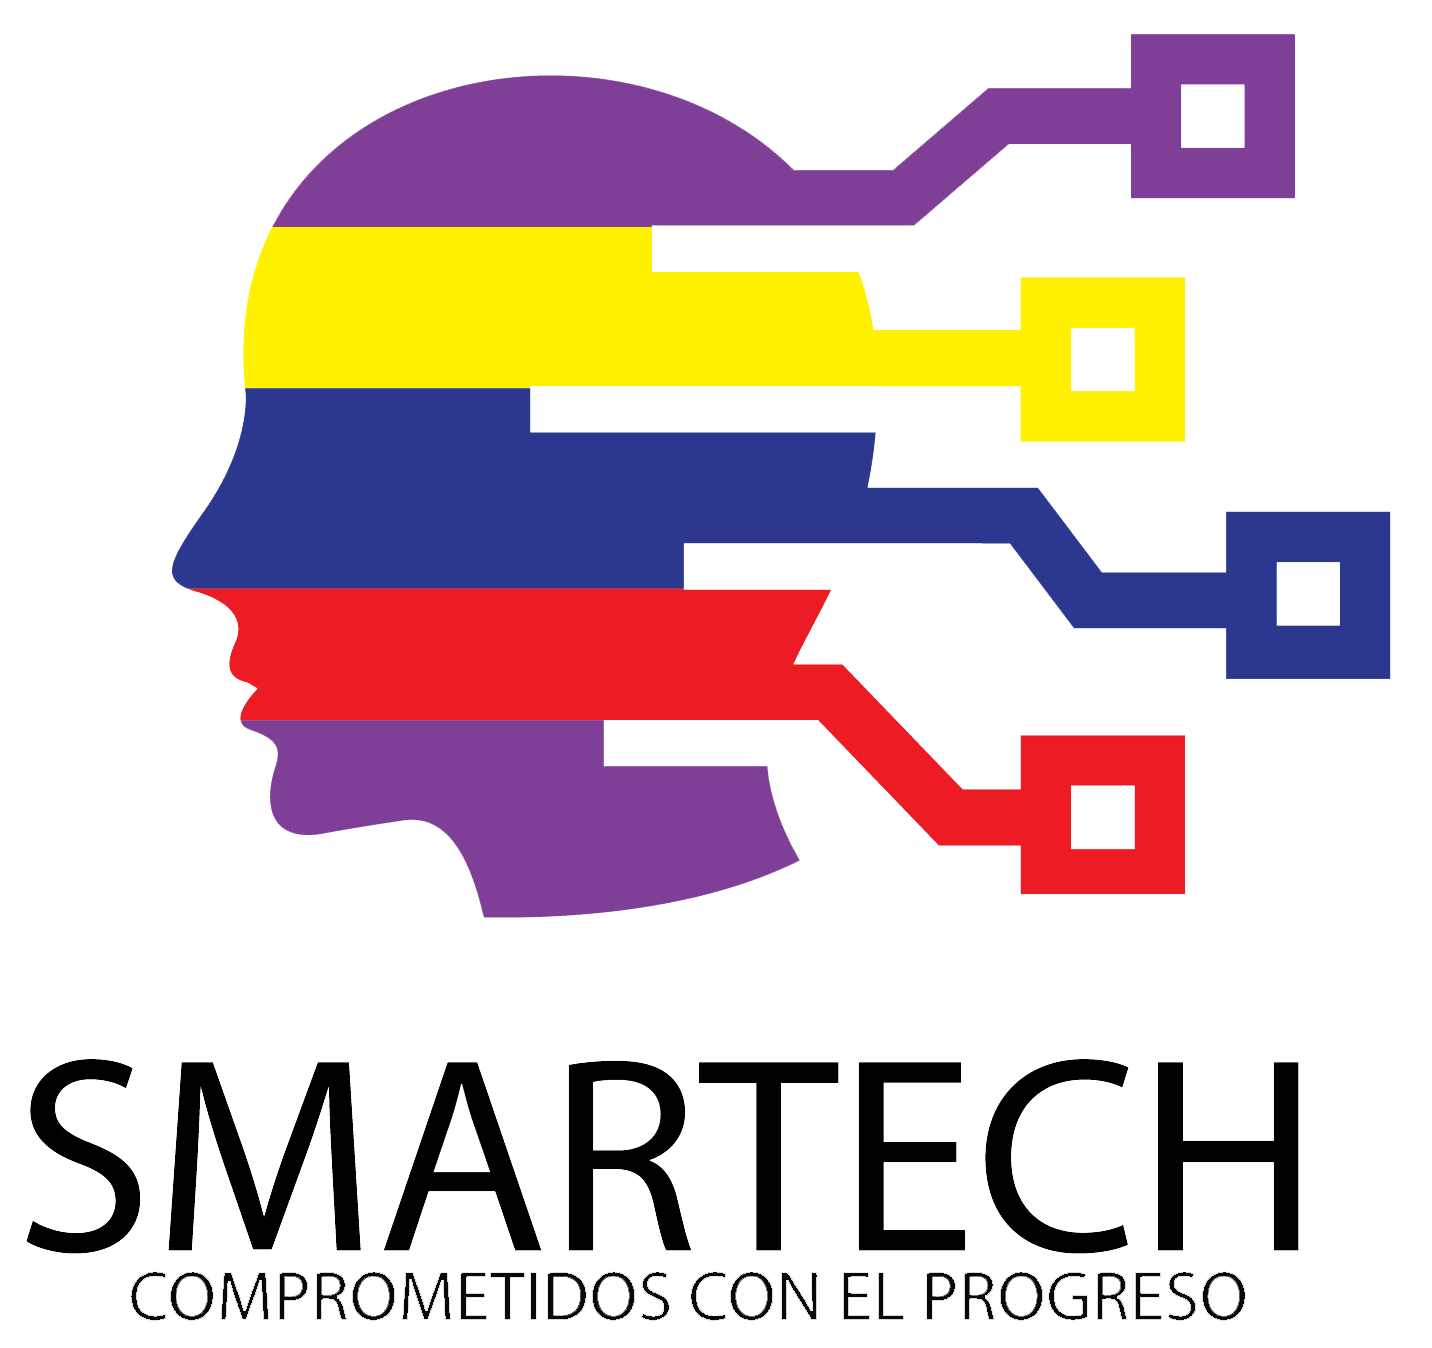 Smartech Colombia